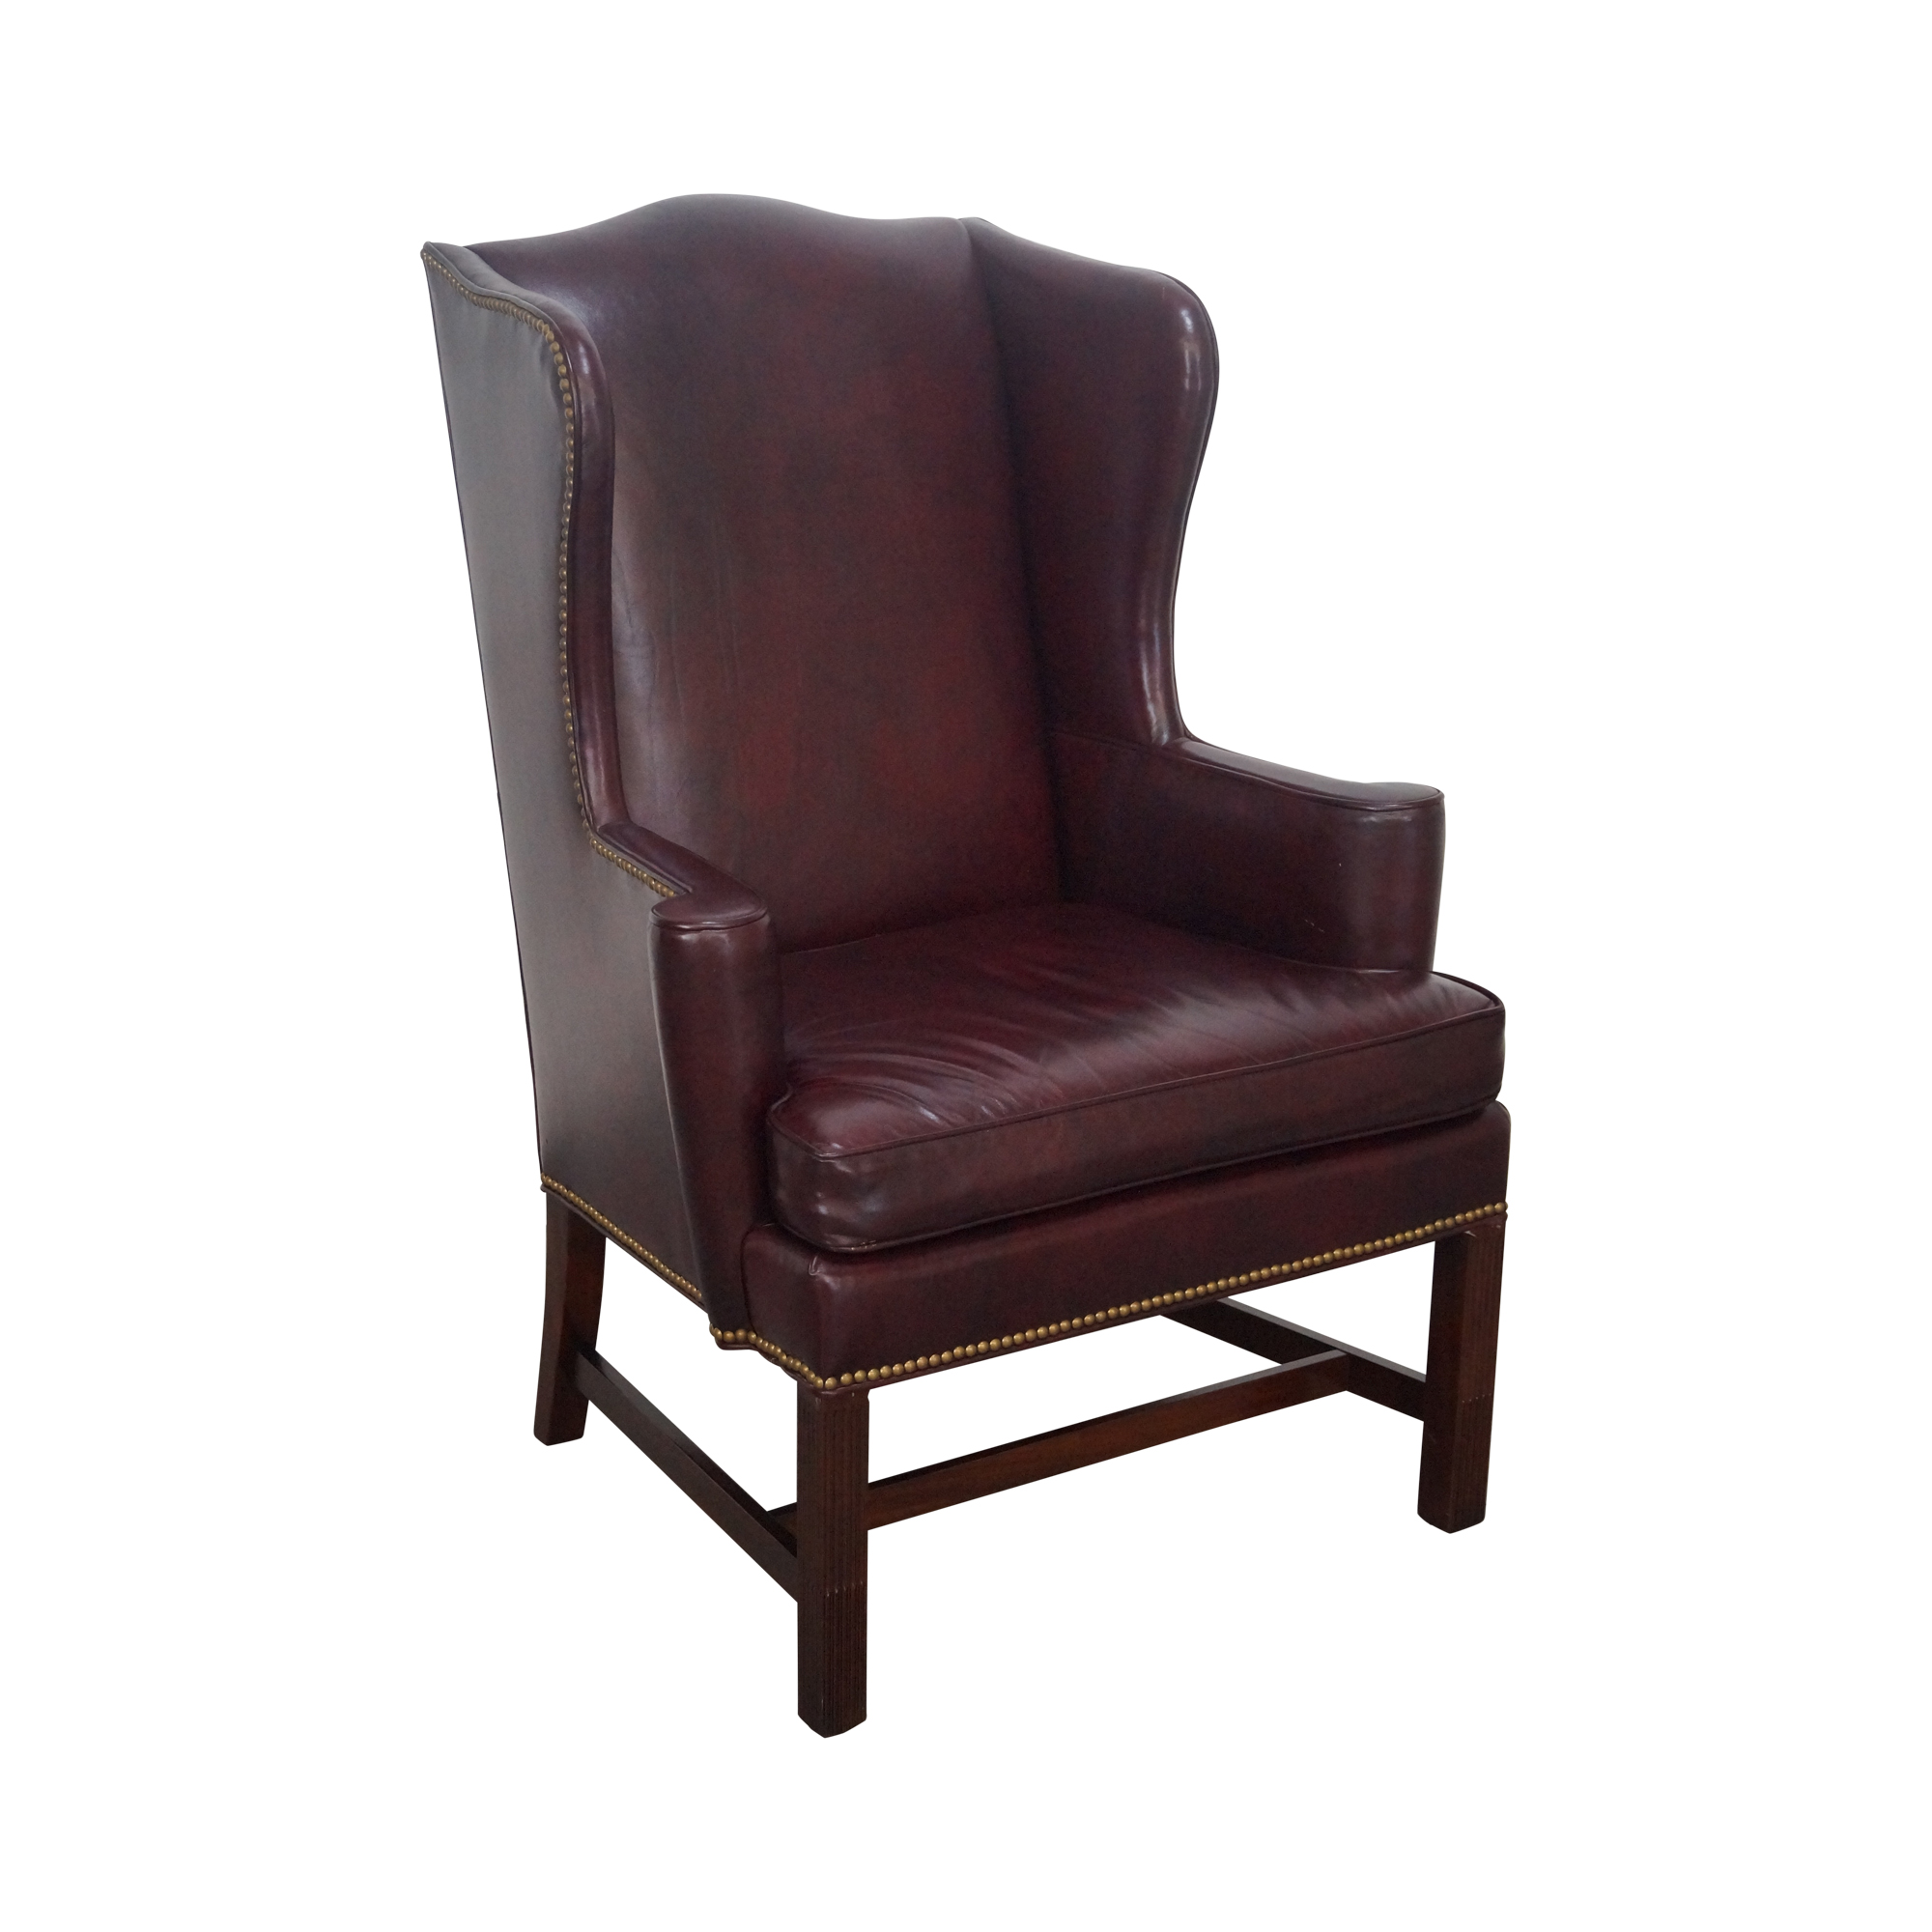 Hickory oxblood leather wingback chair chairish